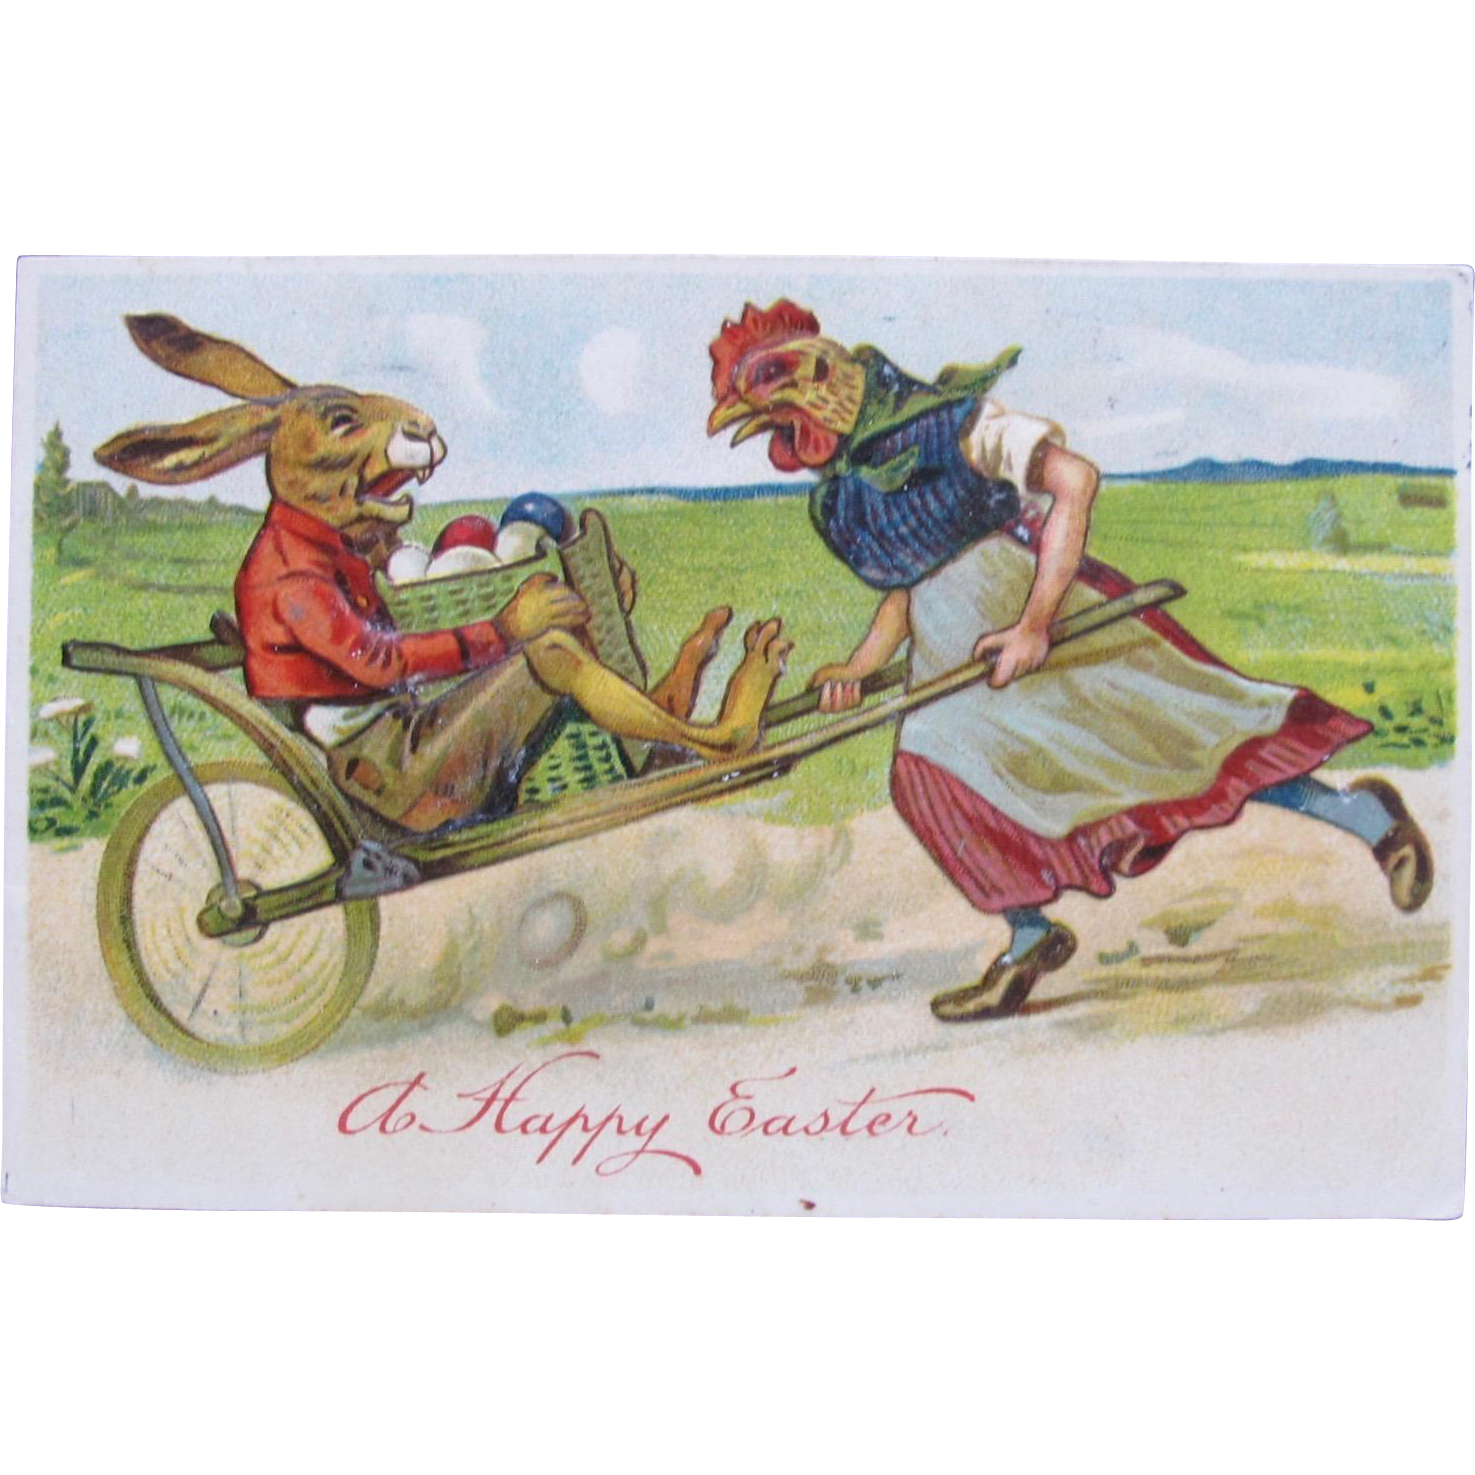 Post Card Dressed Rabbit Chicken for Easter 1910